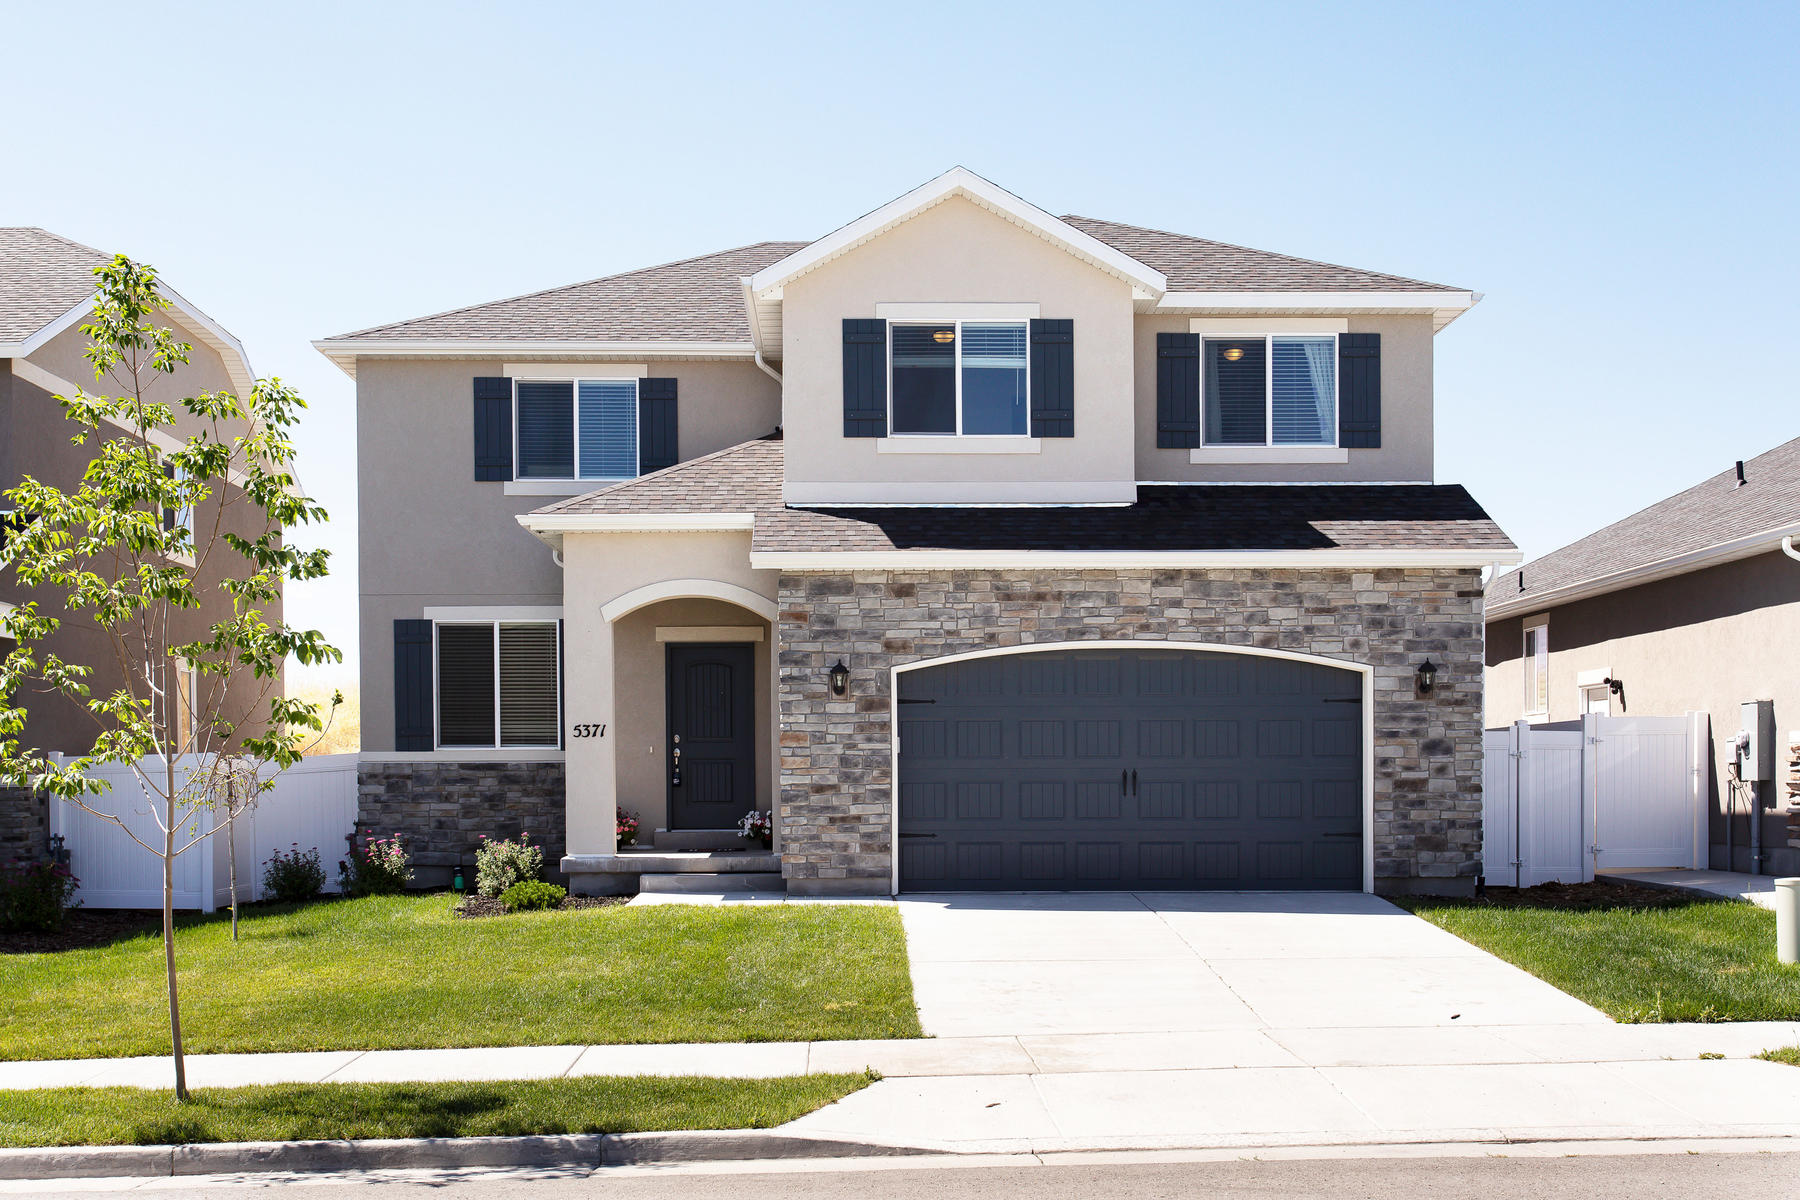 Single Family Homes for Active at Fully Finished Home Only One Year Old 5371 W Iron King Drive Herriman, Utah 84096 United States